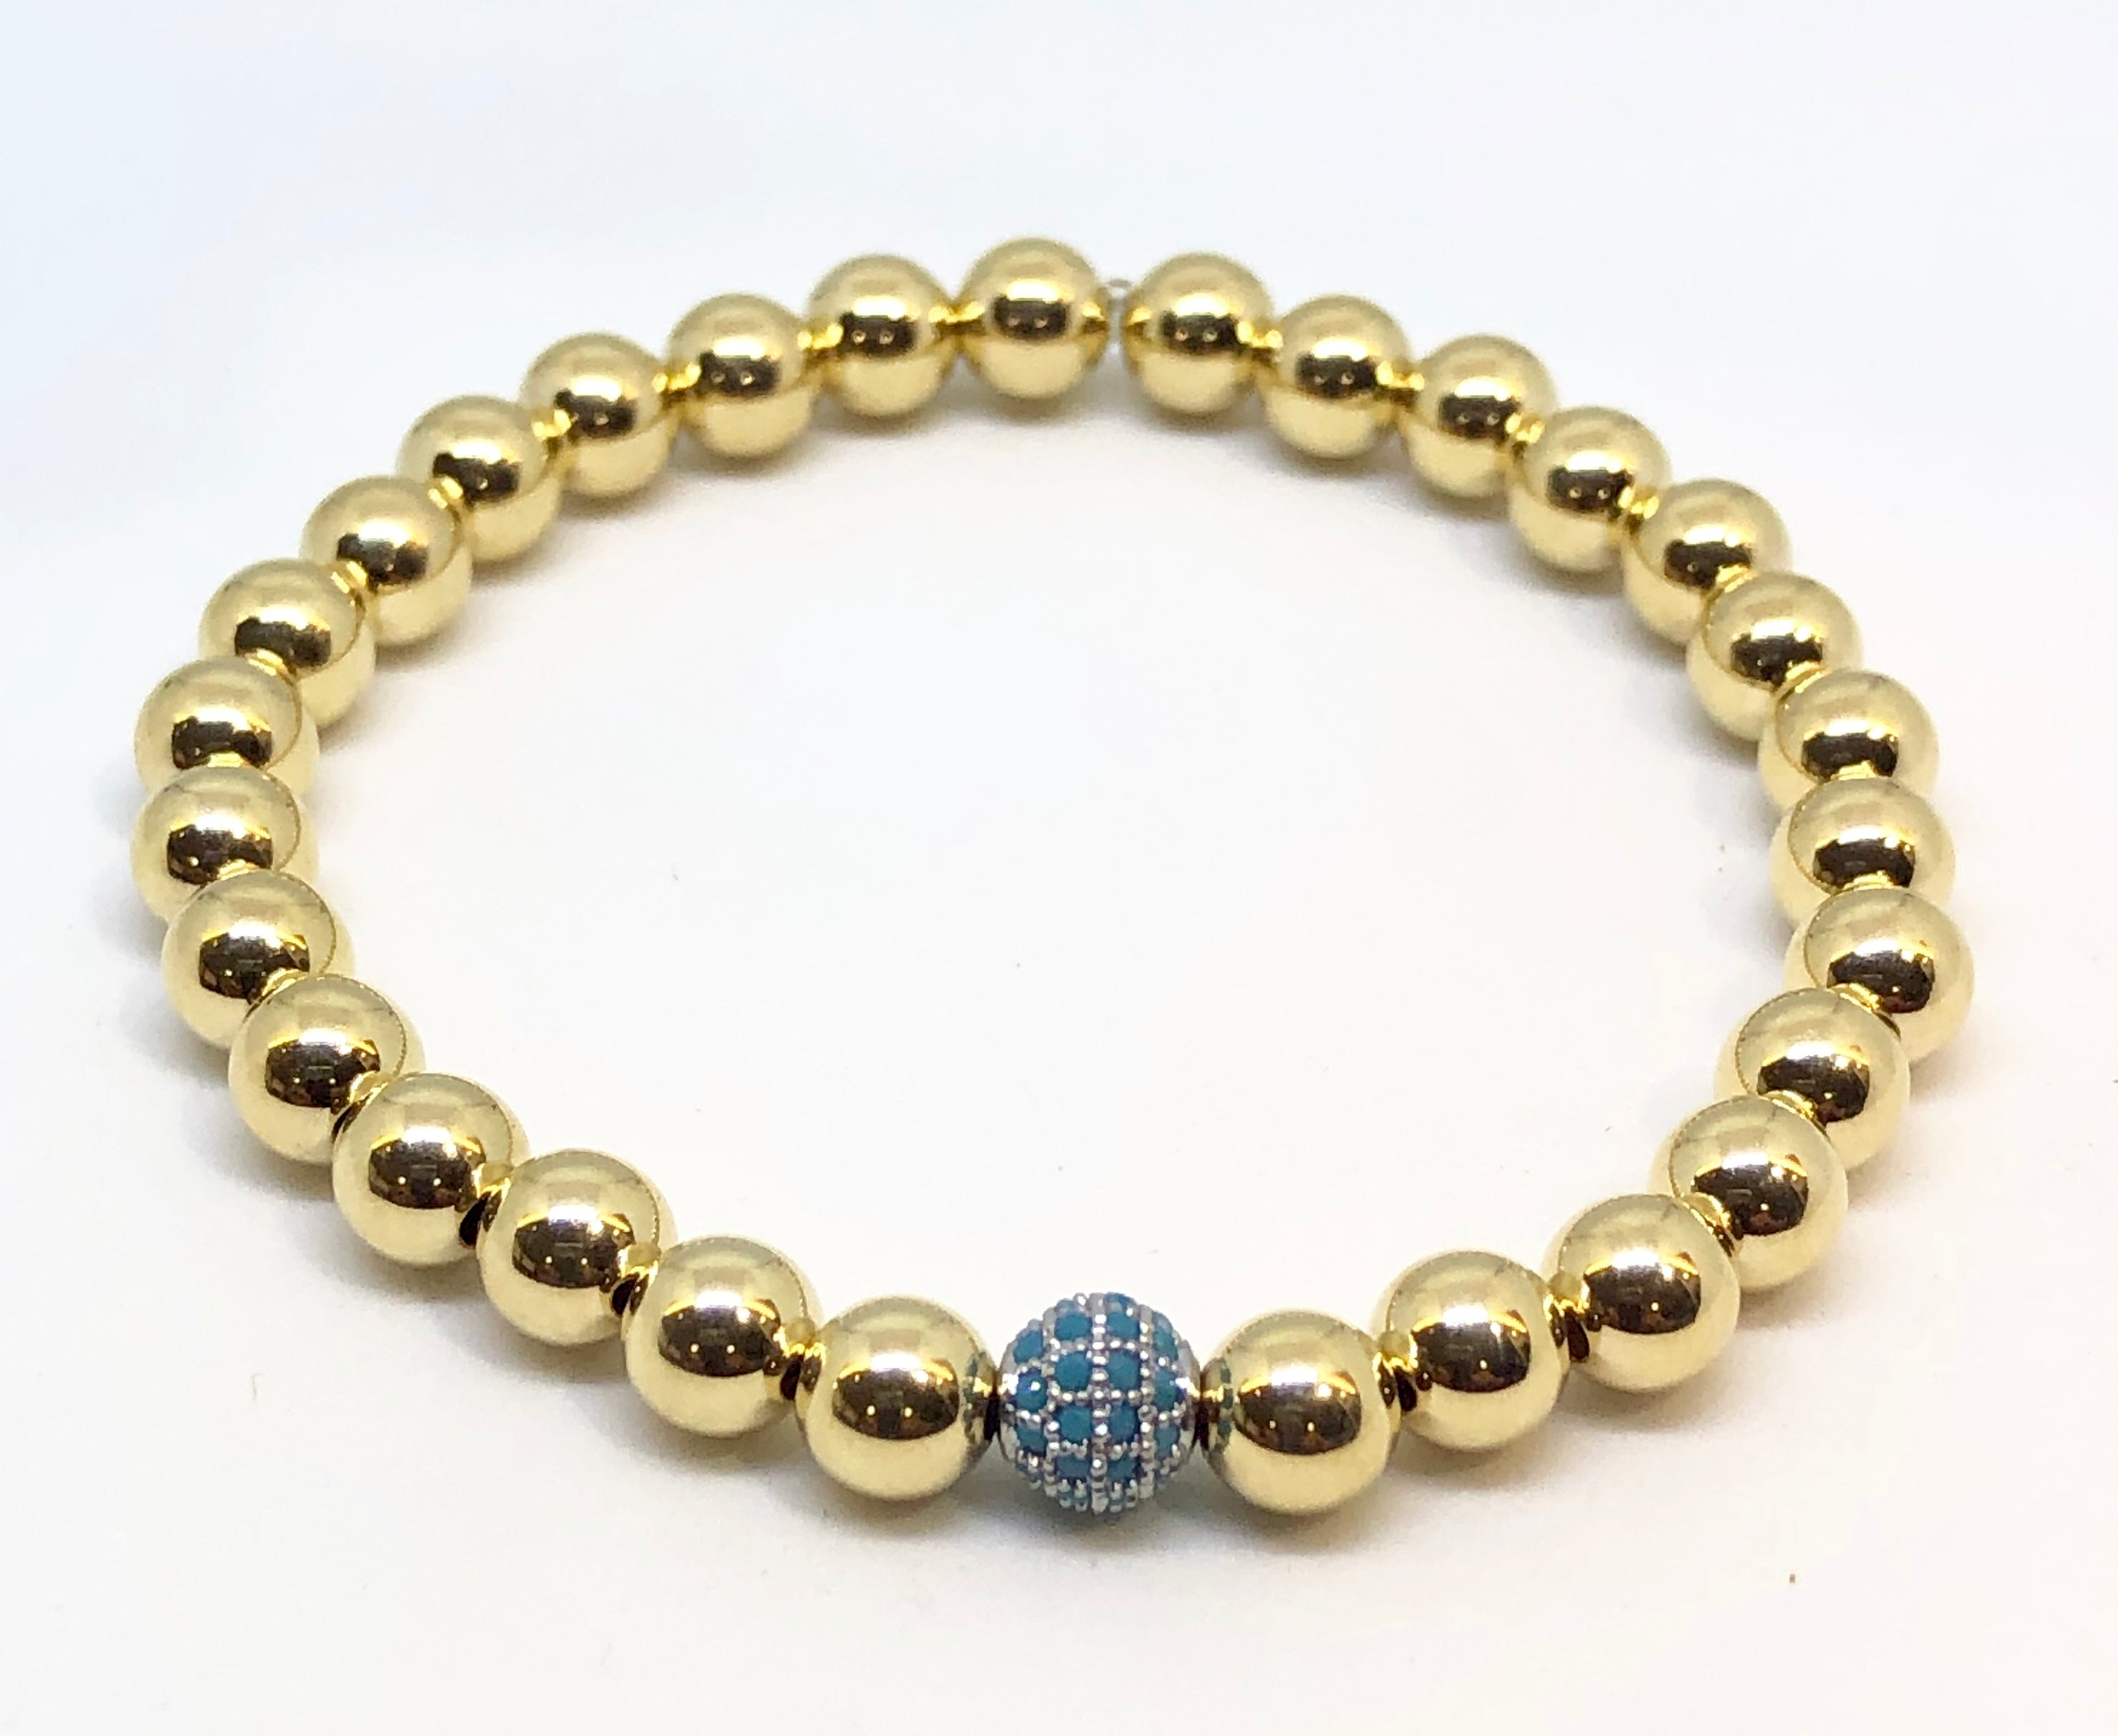 6mm 14kt Gold Filled Bead Bracelet with Jeweled Blue Disco Ball